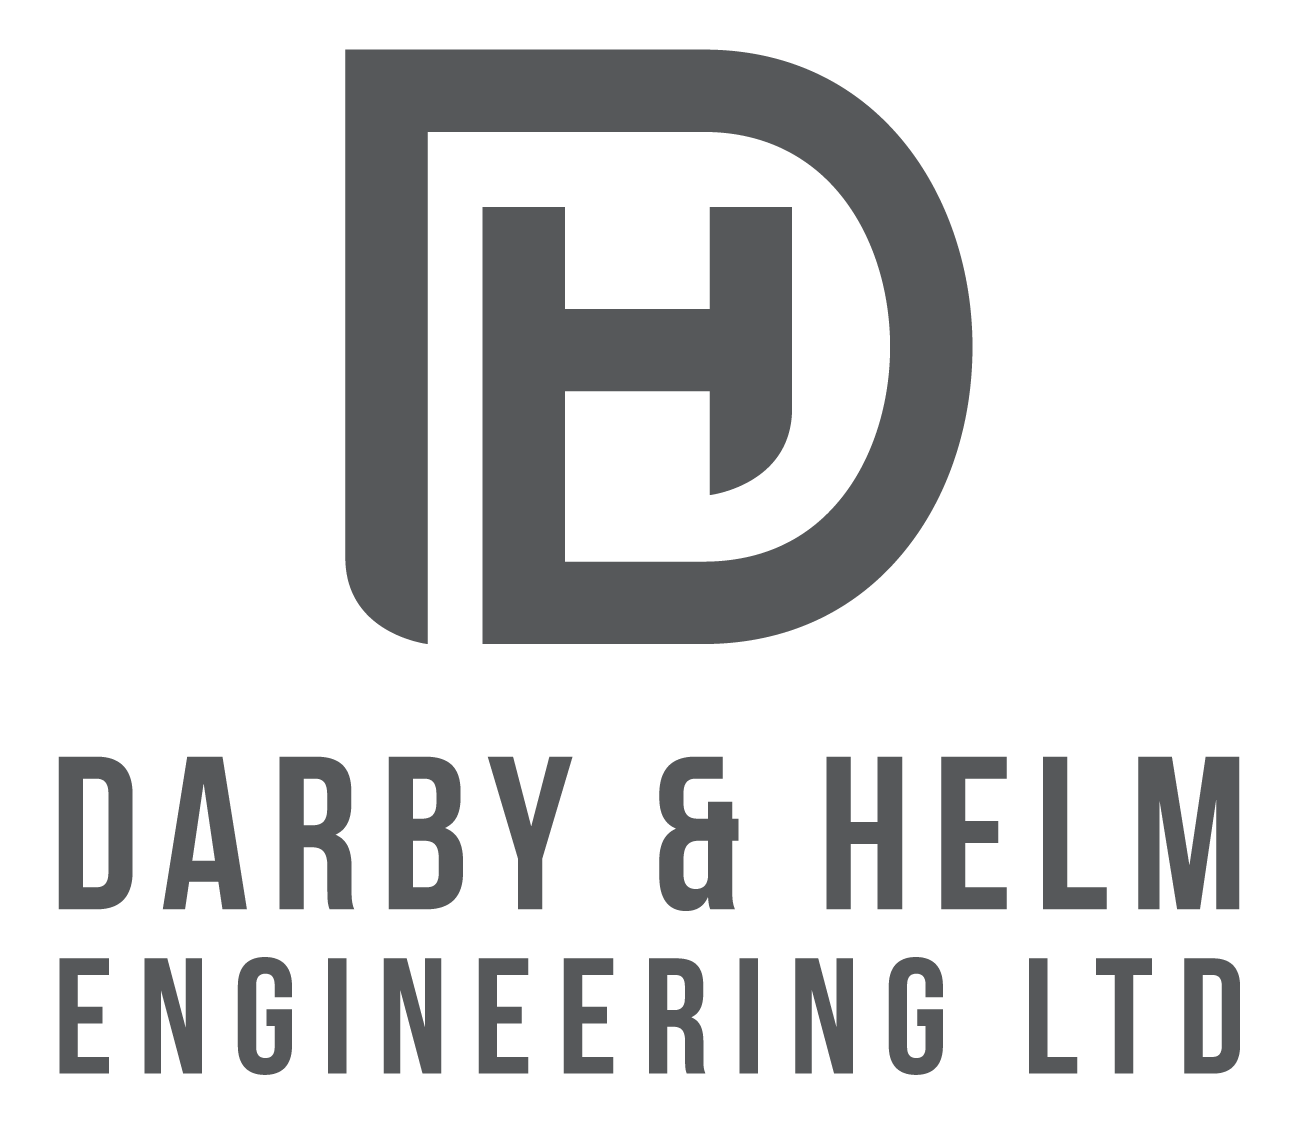 Darby and Helm Engineering